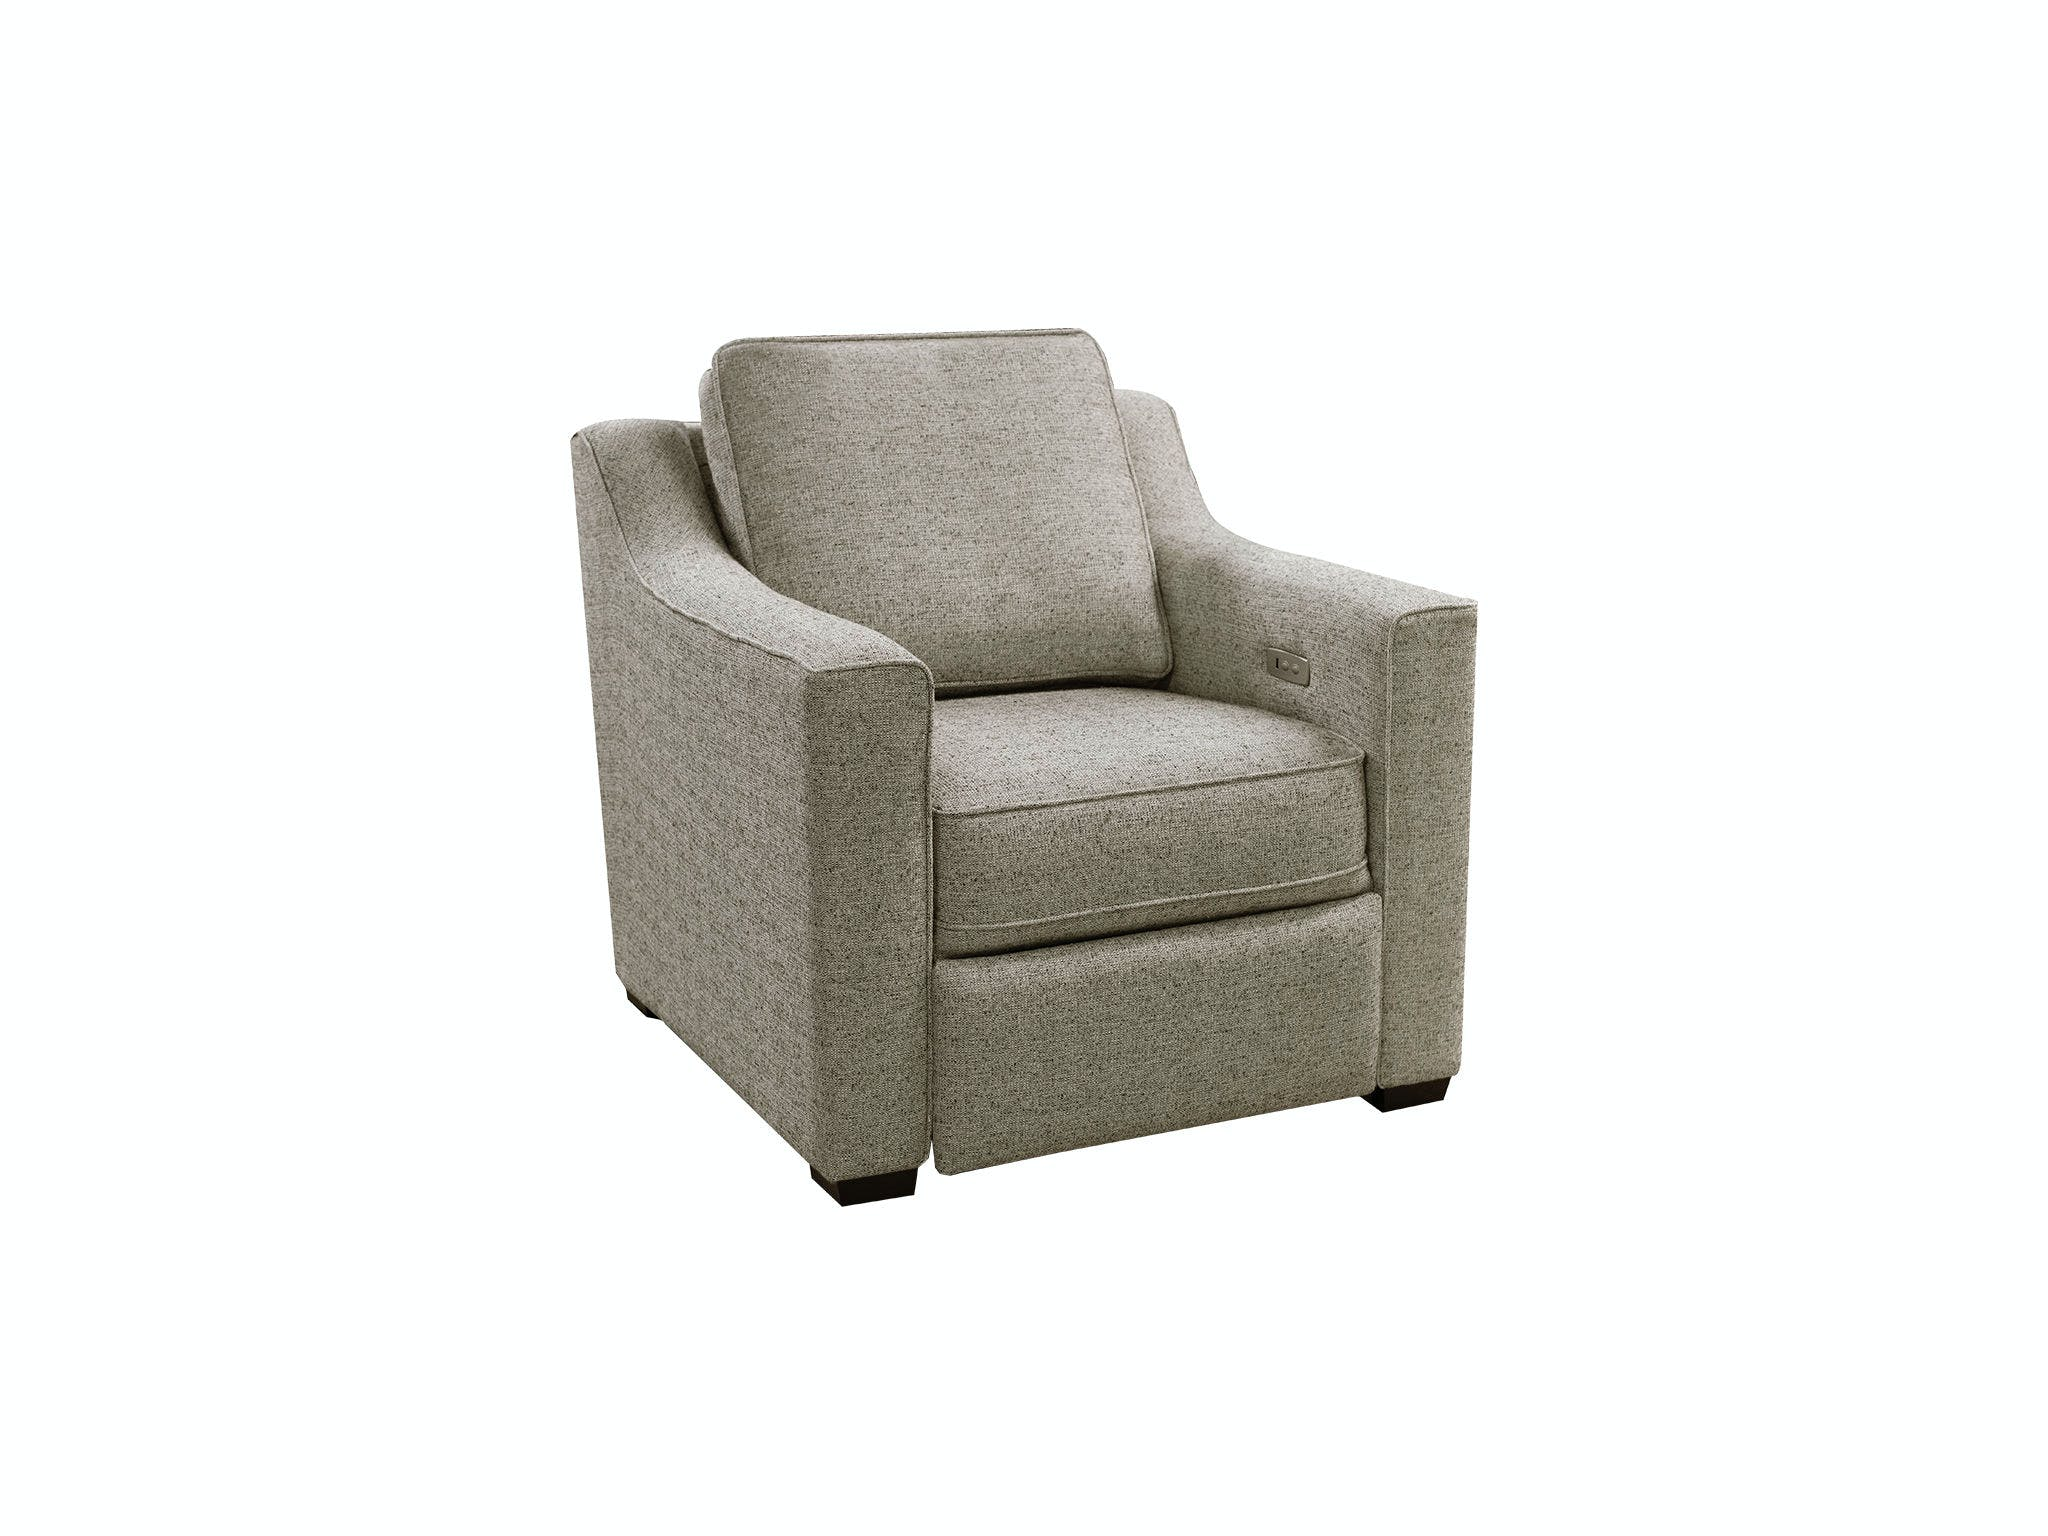 England Living Room Quentin Chair With Power Ottoman 8q00 30